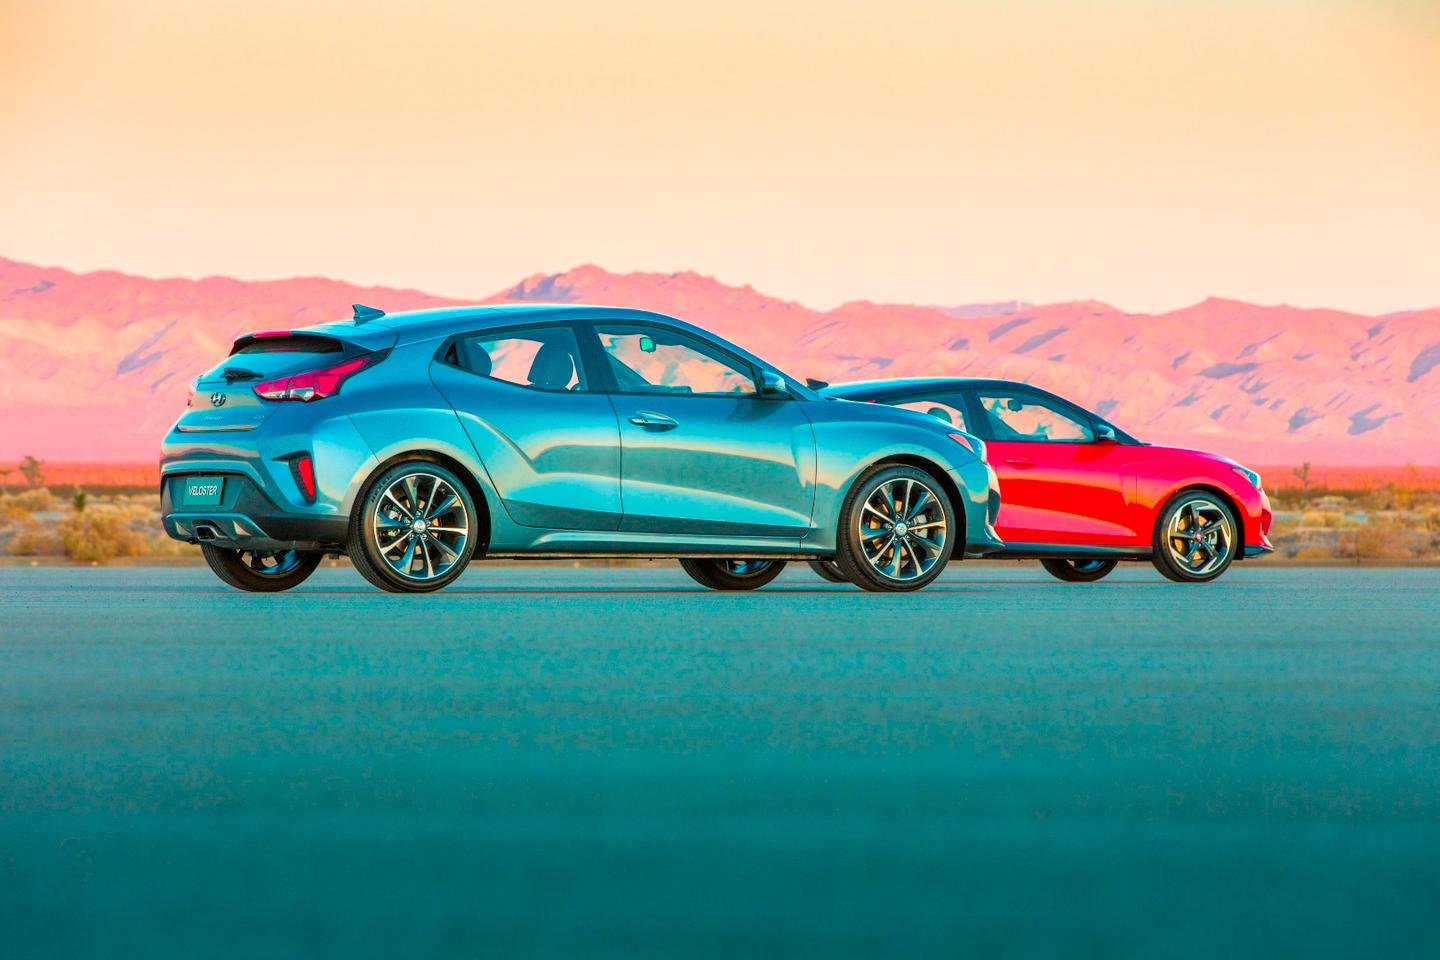 The2019 Hyundai Veloster and Veloster Turbo have debuted in Detroit and will enter the U.S. market soon